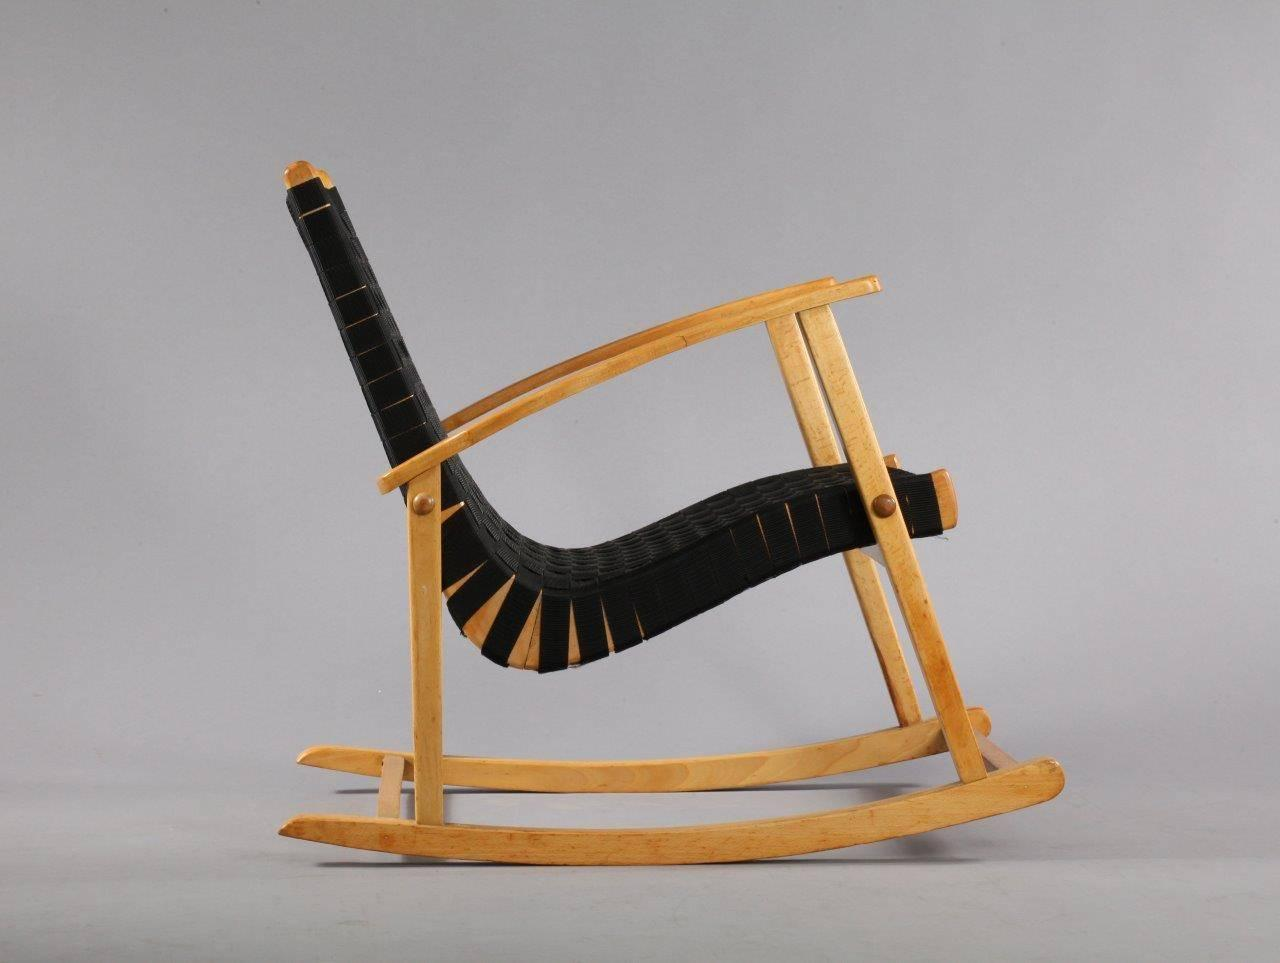 fortable Rocking Chair Attributed to Jens Risom 1950